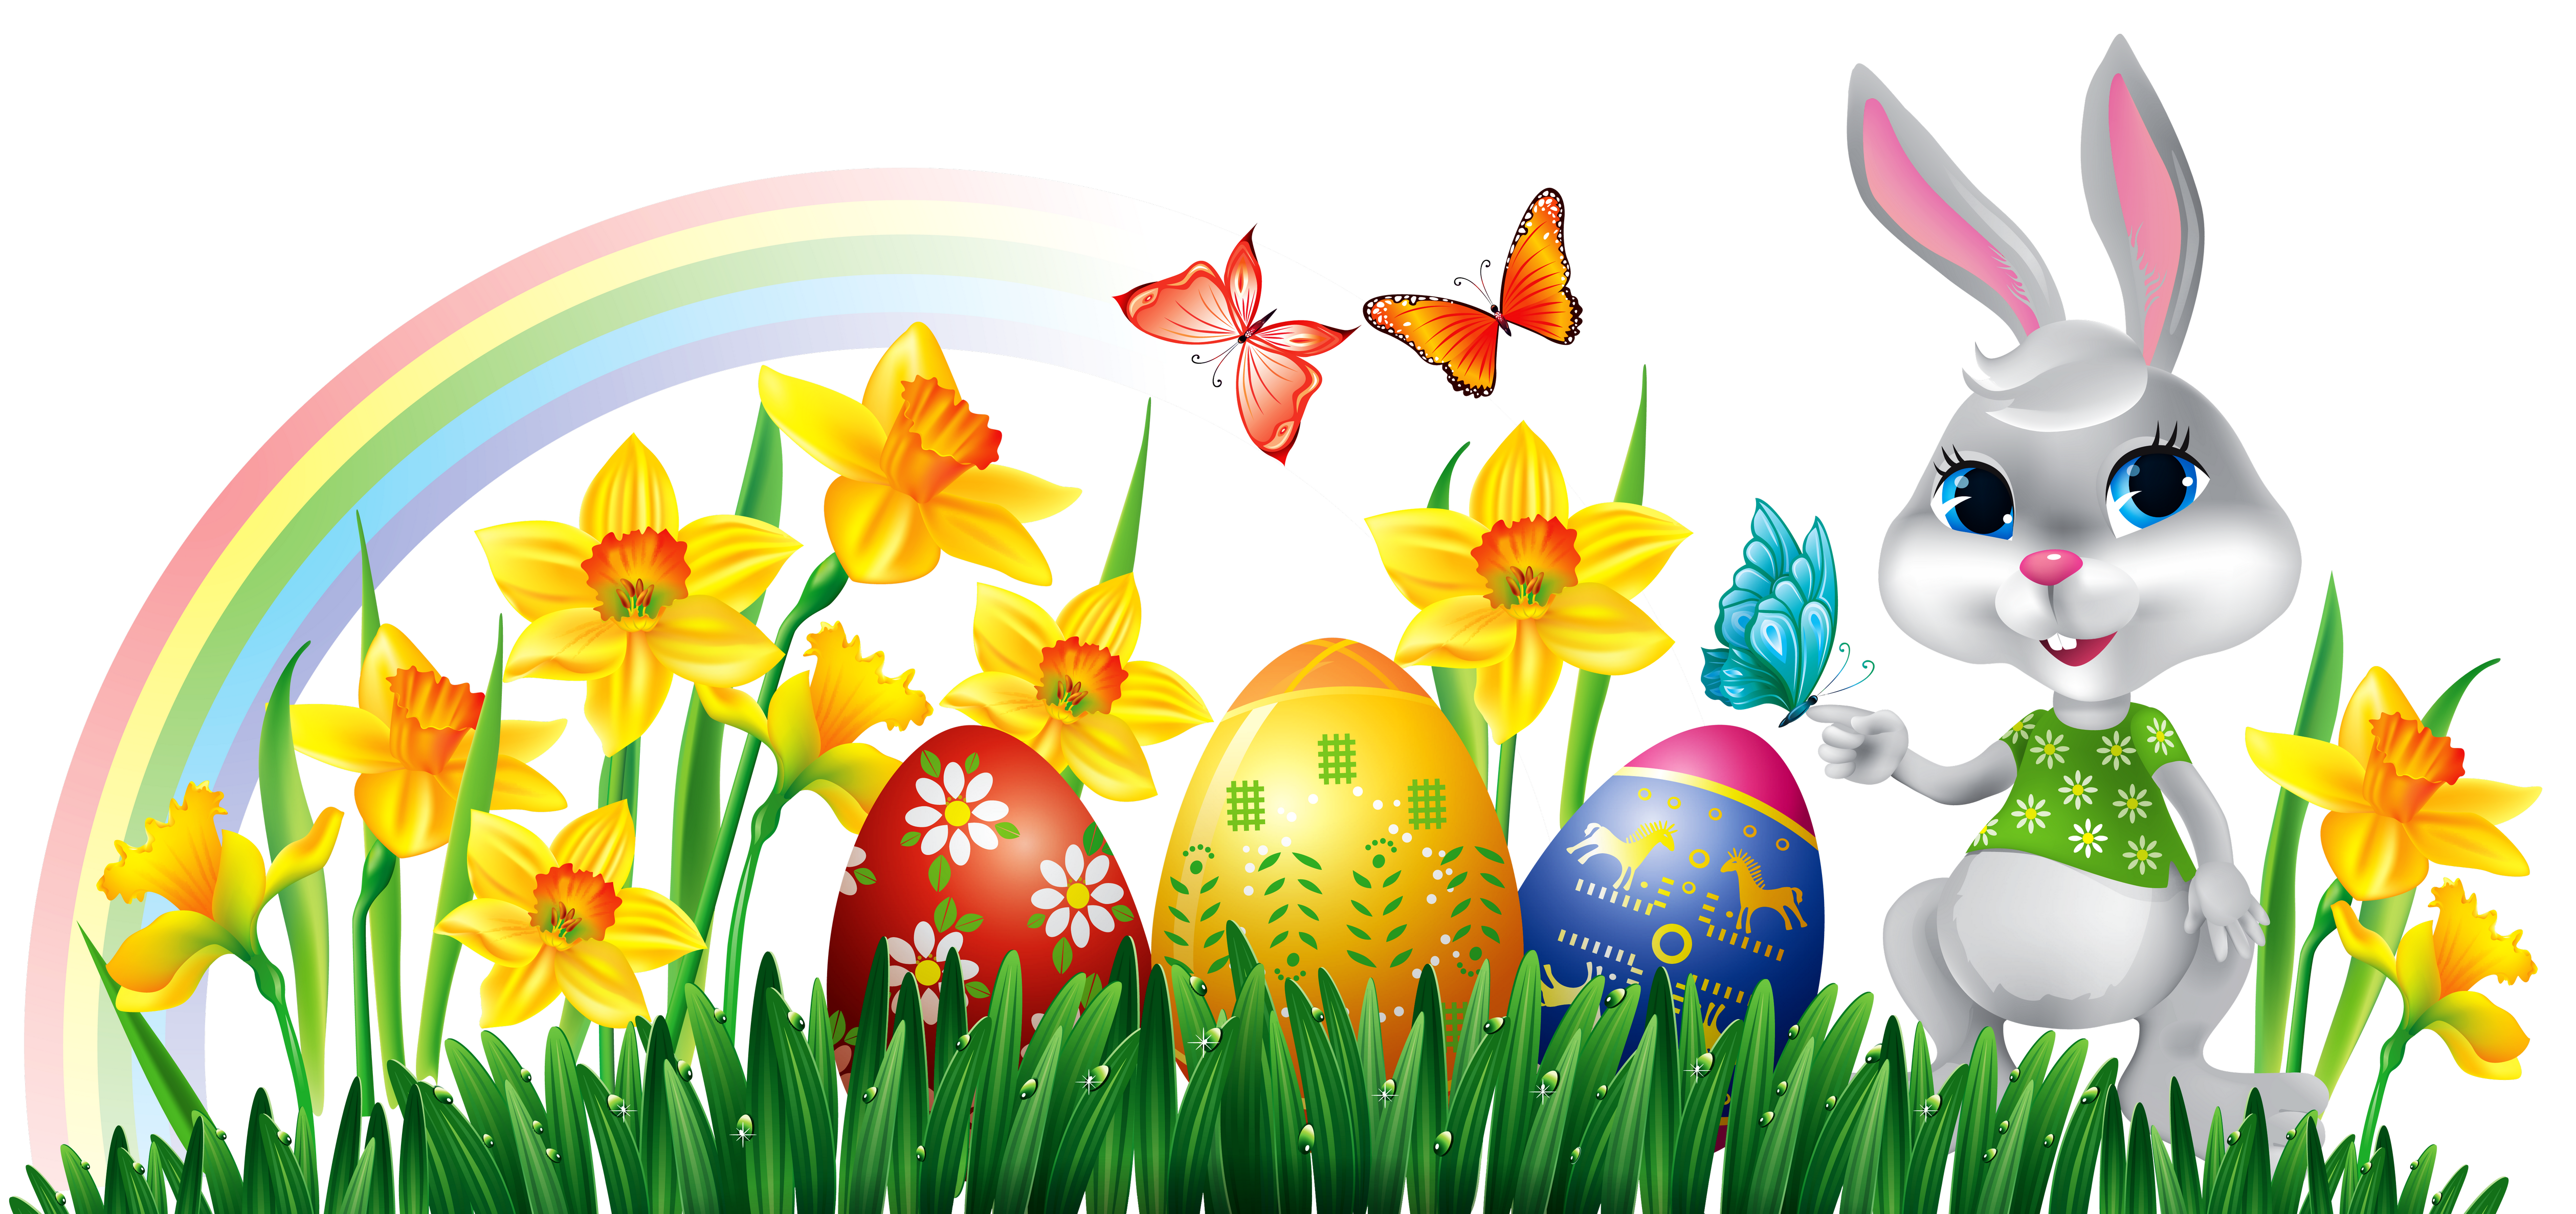 Happy Easter Clip Art Free - Cliparts.coEaster Clipart Free